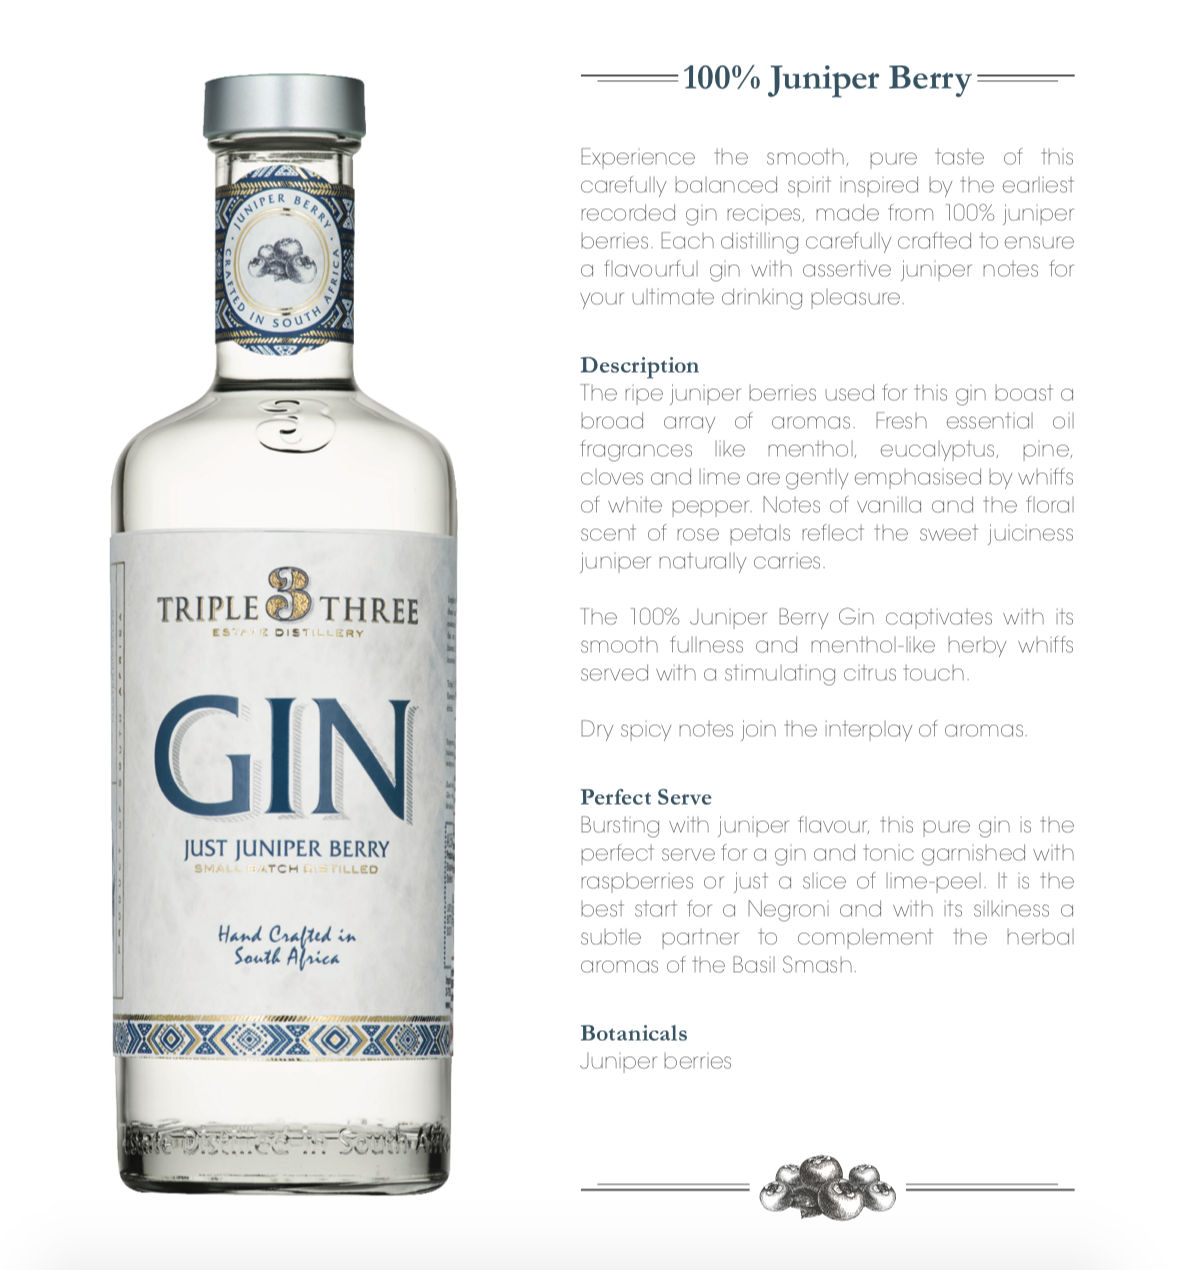 Just Juniper Berry Gin